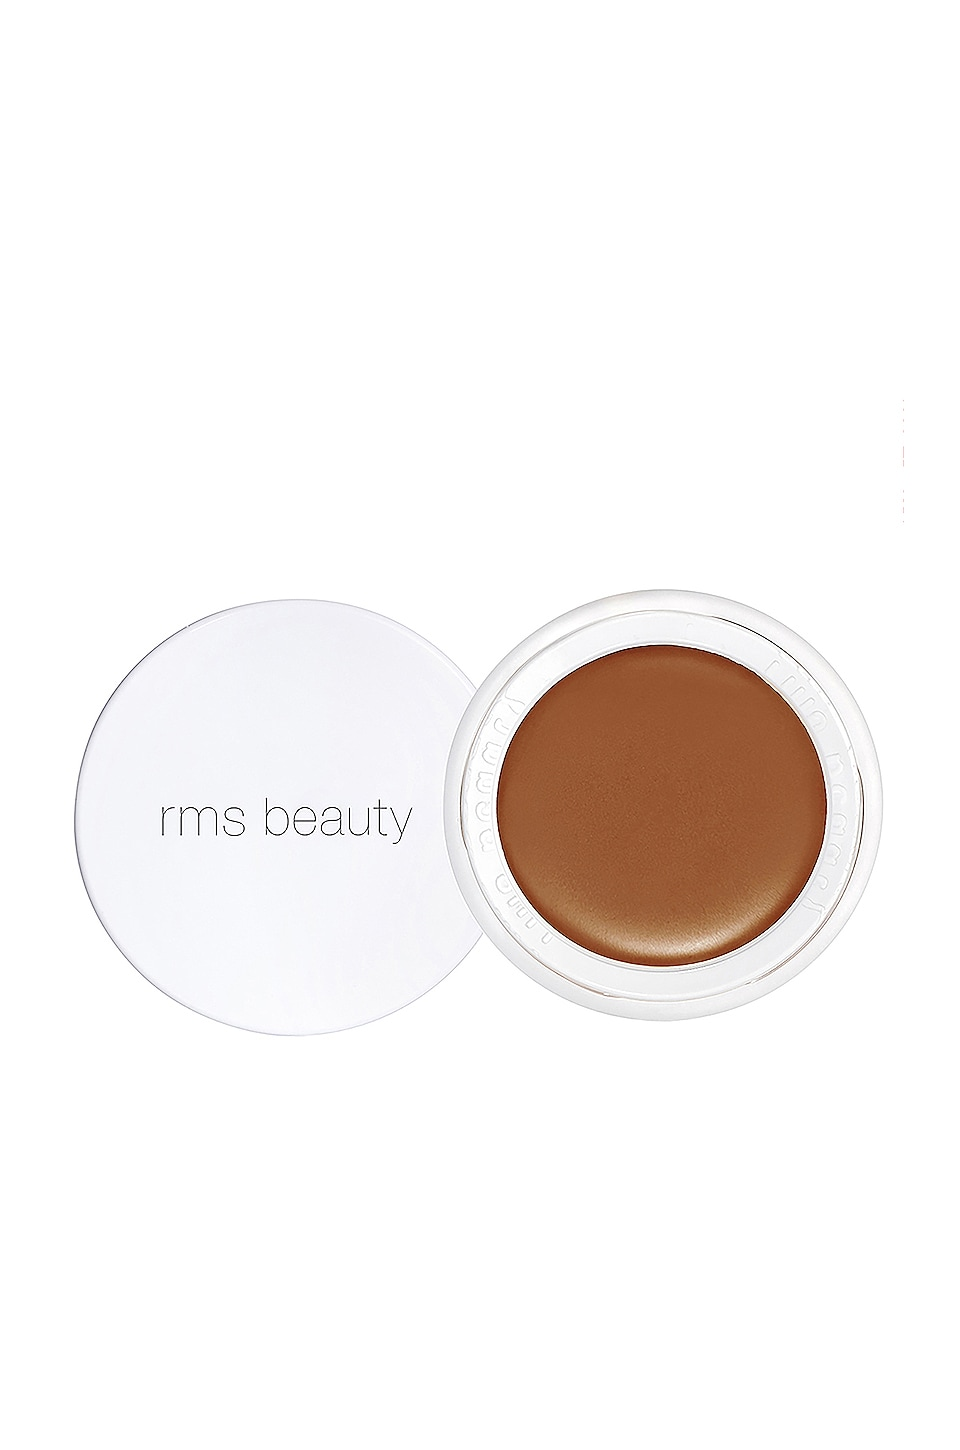 RMS Beauty Uncover Up in 99